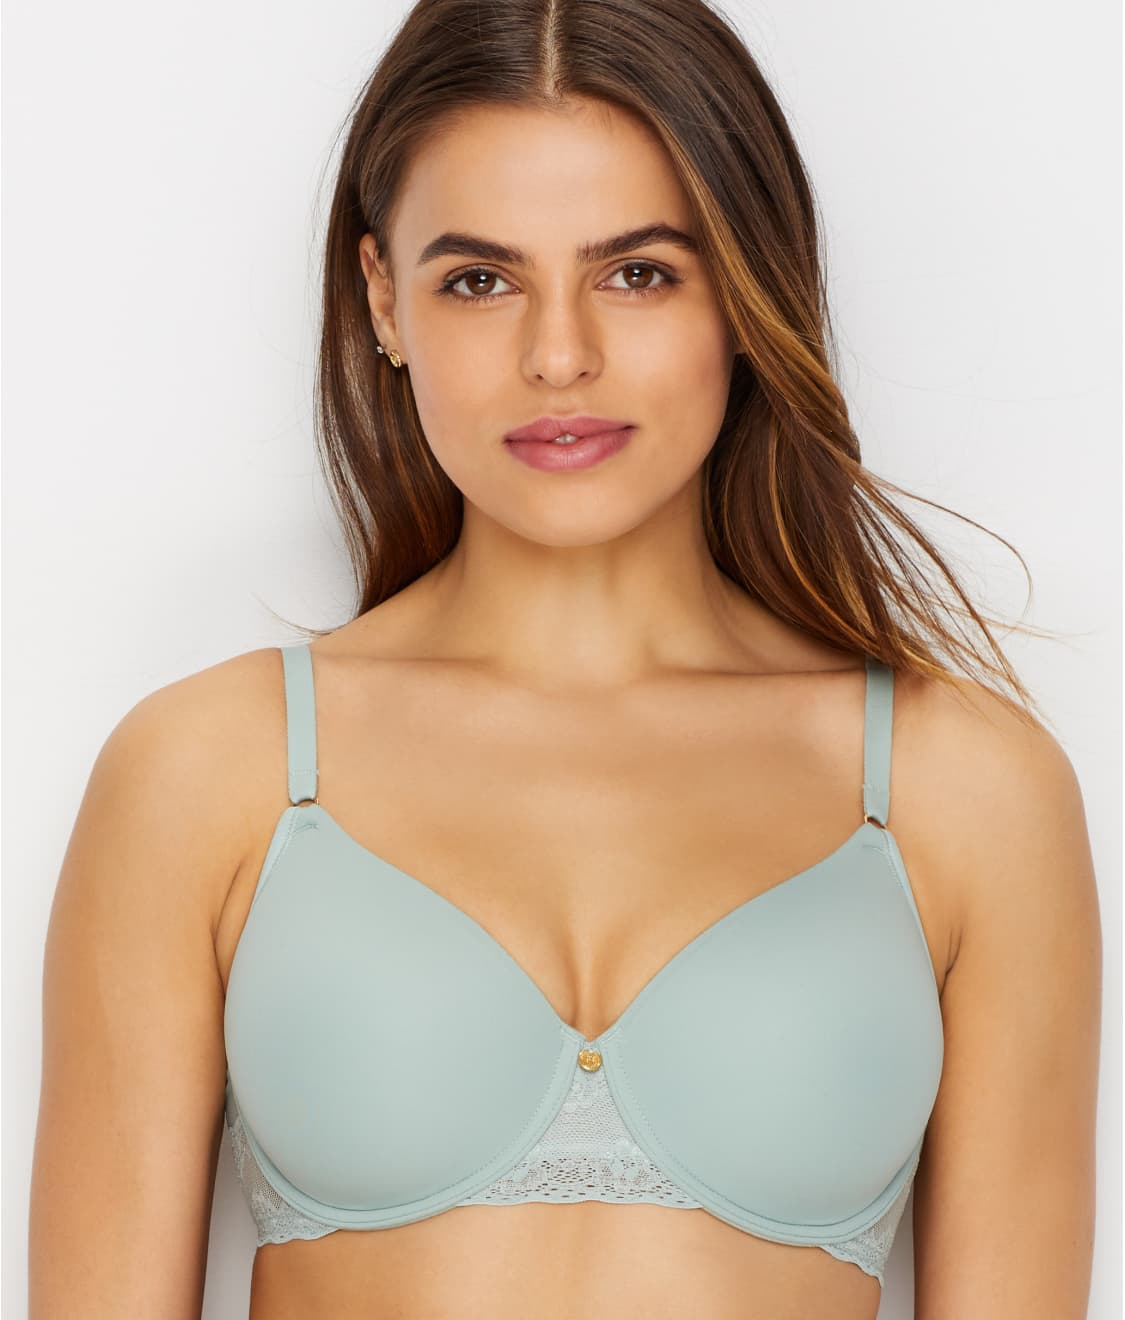 709b01368e847e See Bliss Perfection T-Shirt Bra in Pear